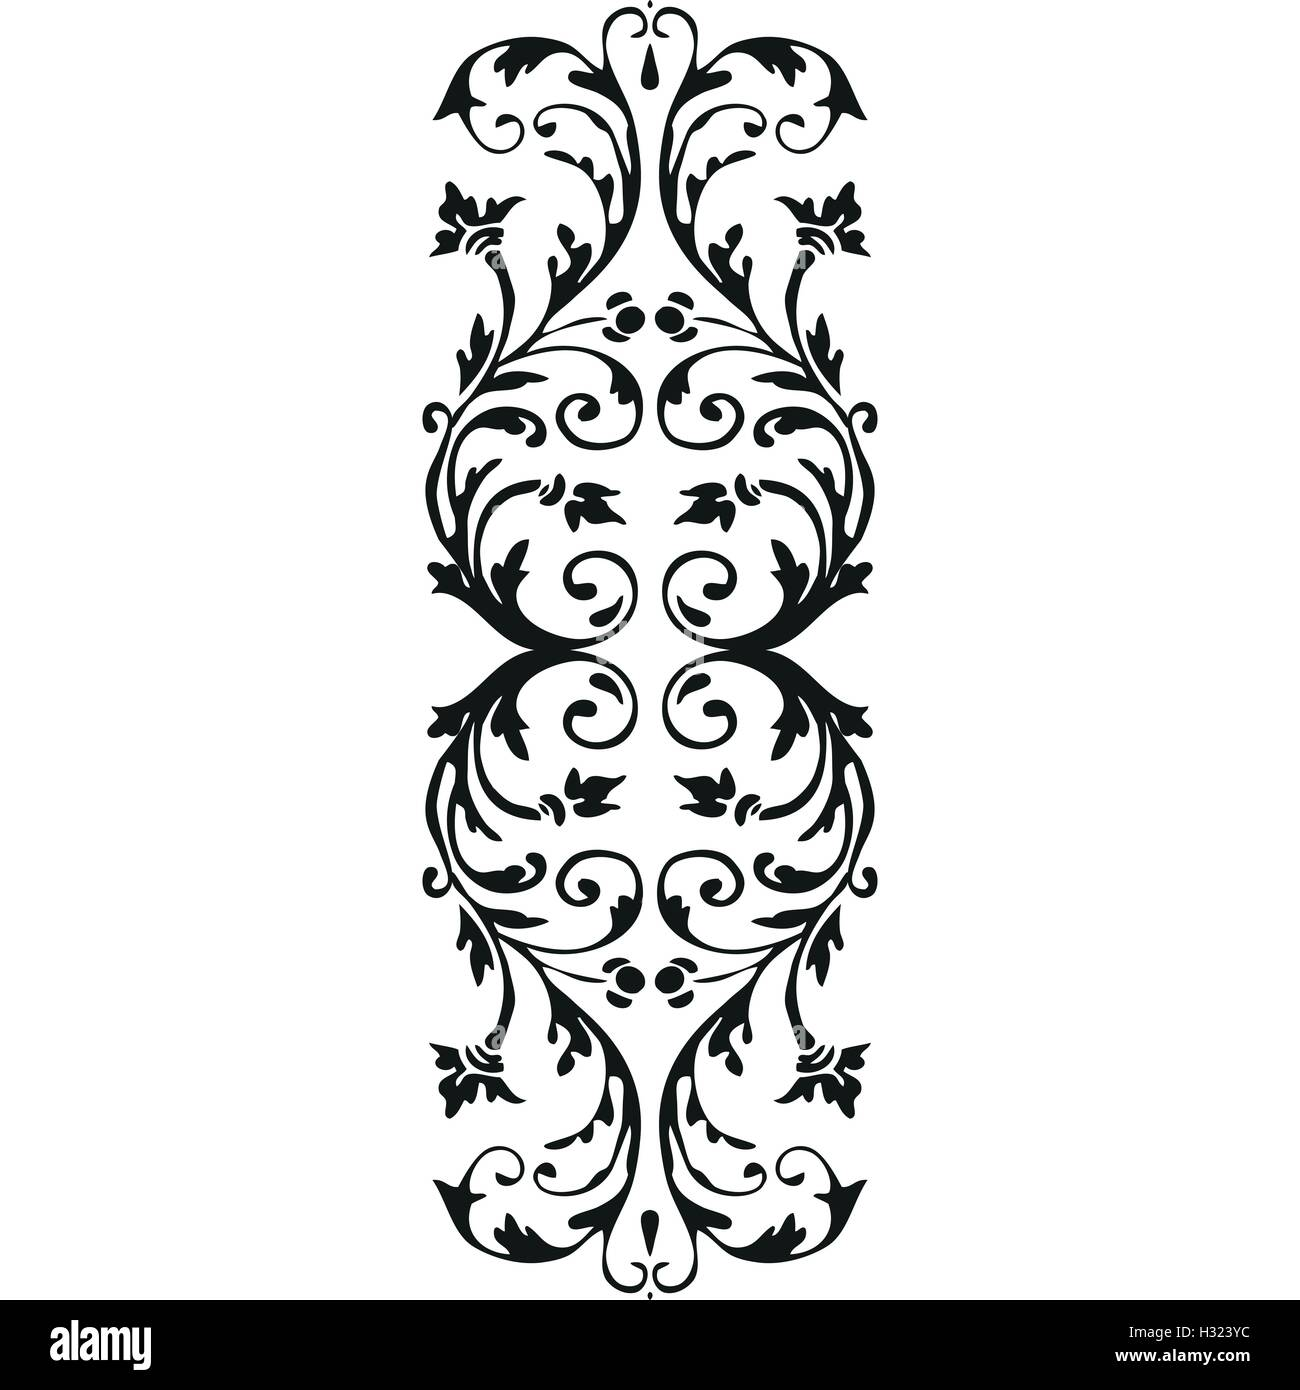 Full Moon Clip Art Black And White Vector Vertical Border Curled Floral Element On White